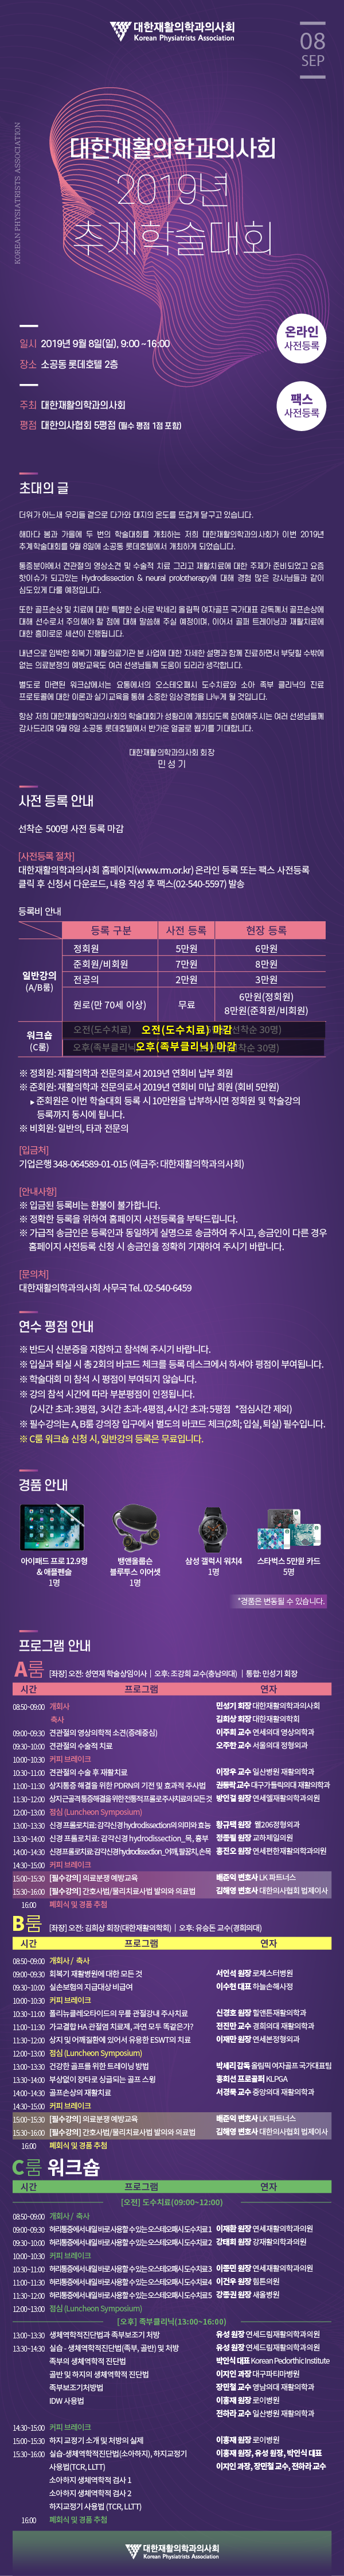 09082019_email_RM